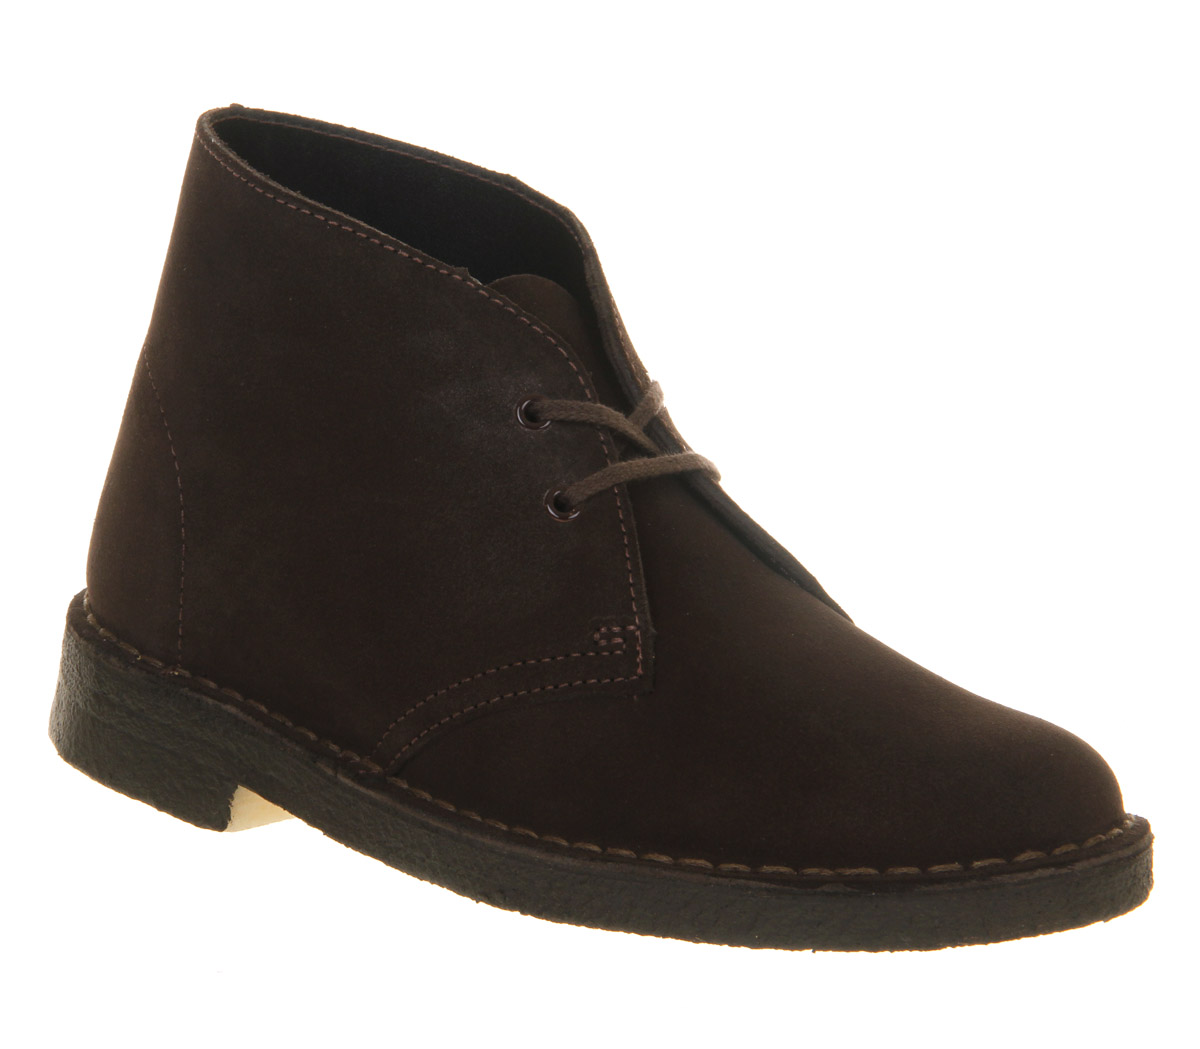 clarks womens brown suede boots